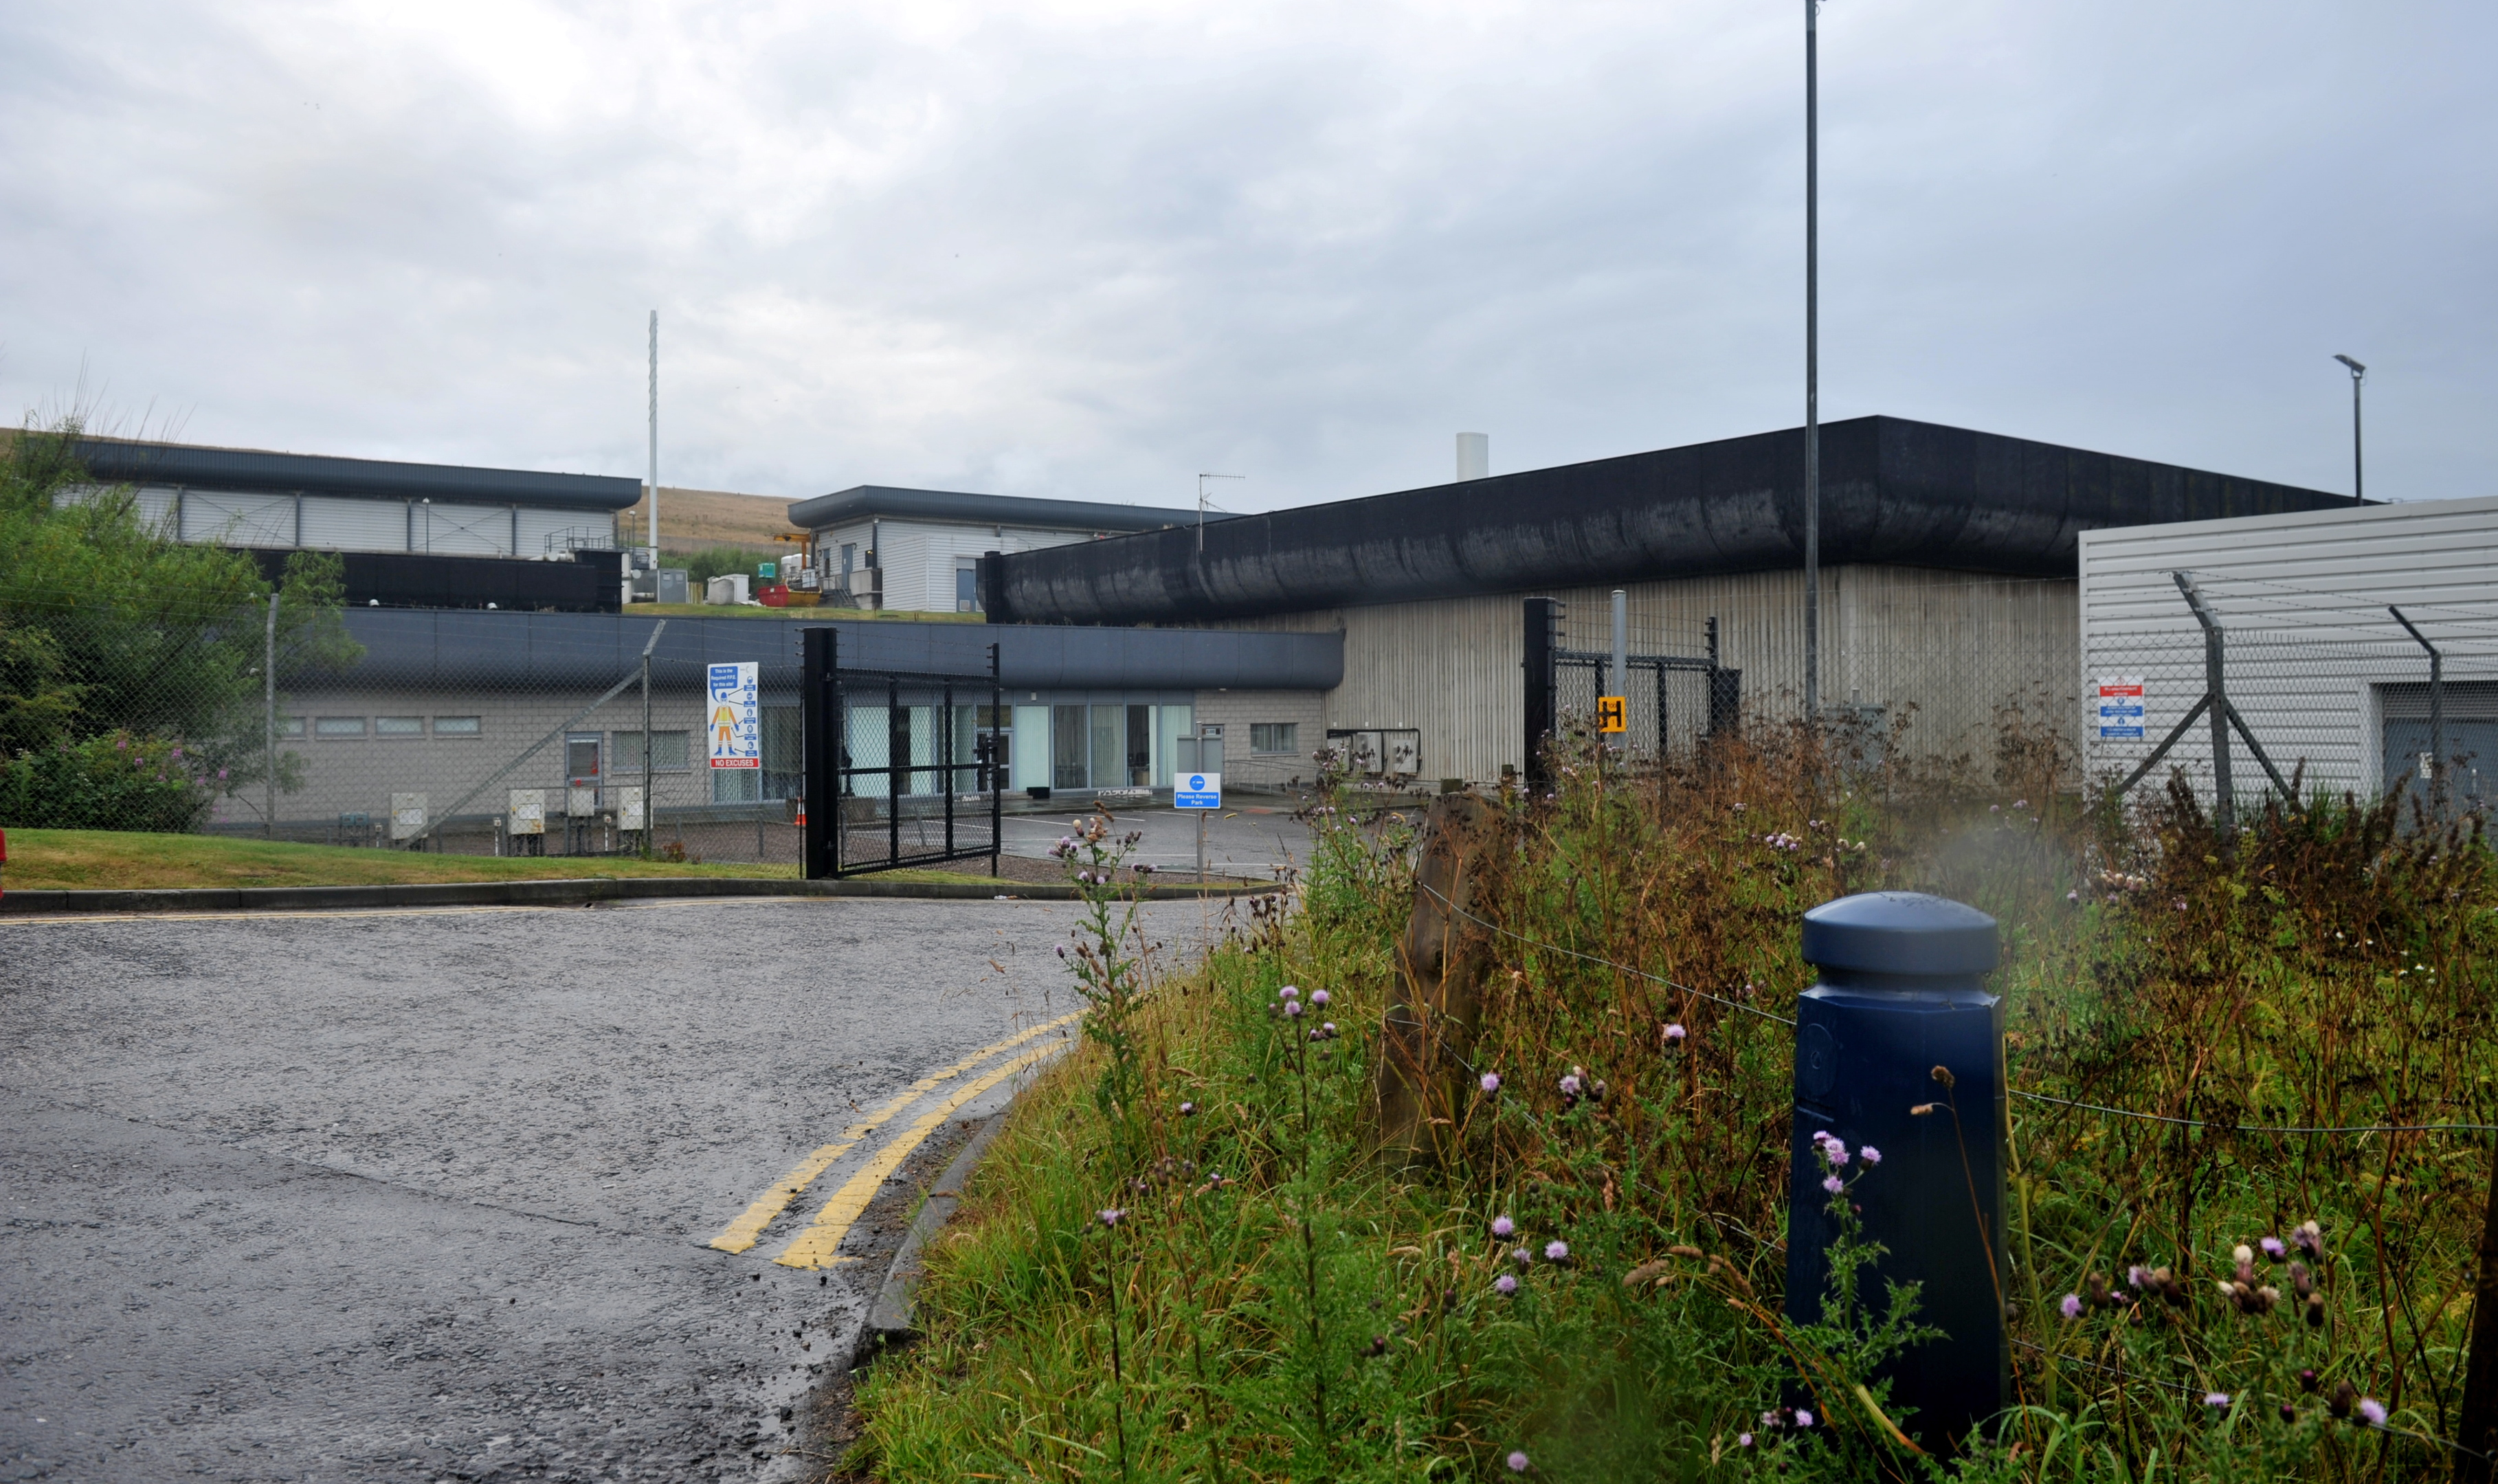 Nigg Waste Water Treatment Works in Torry has been linked with unpleasant smells in the community.